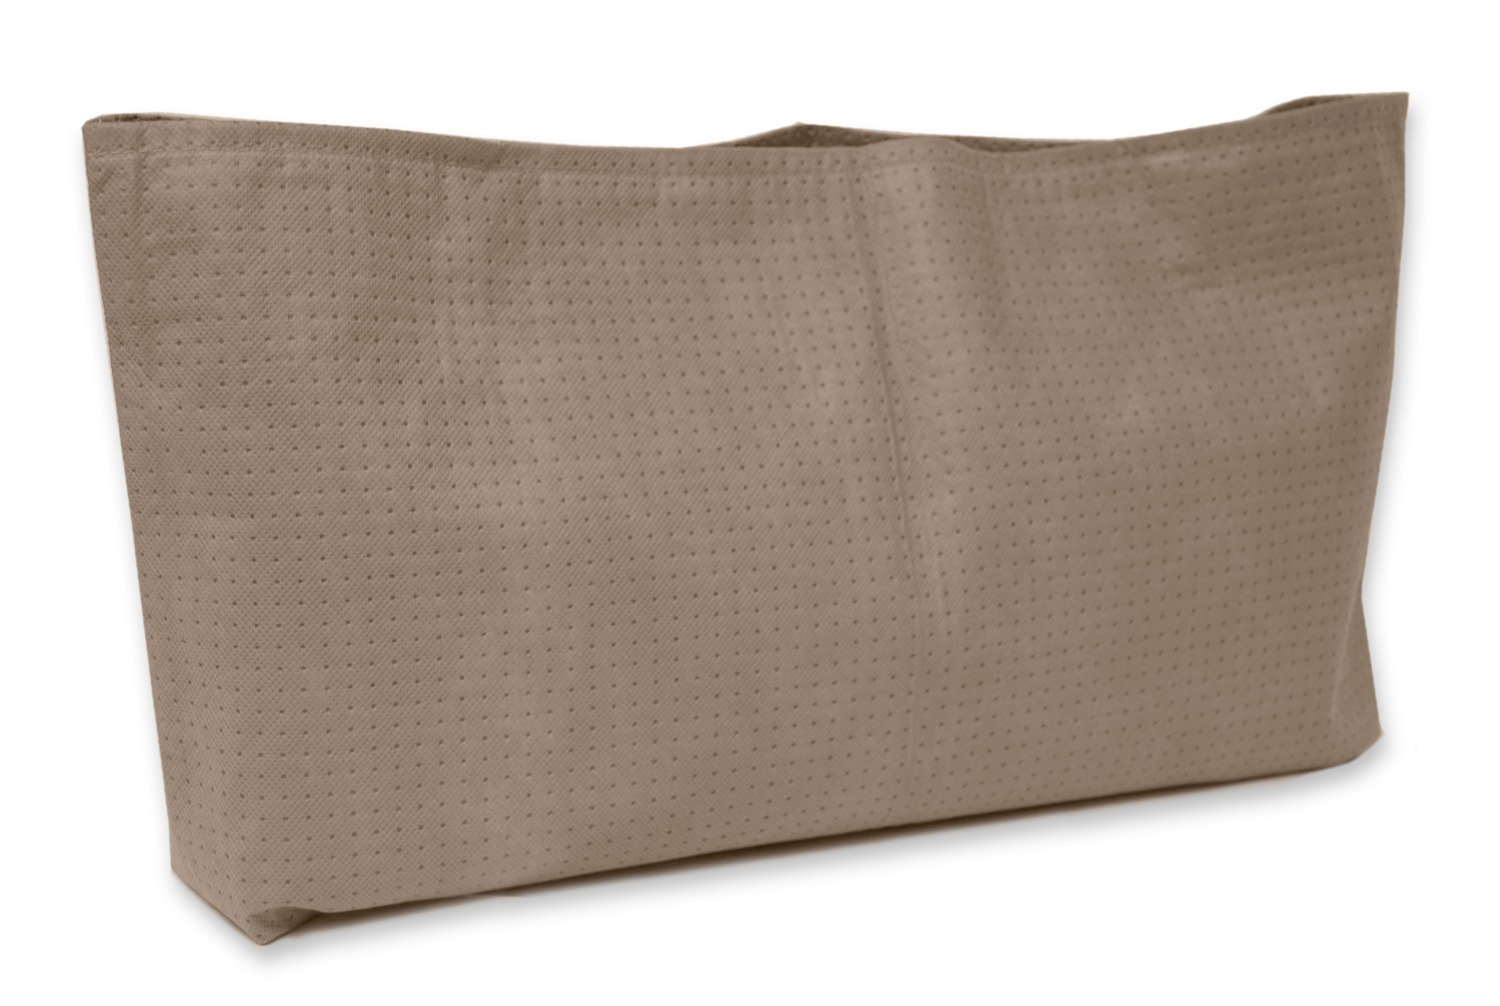 KoverRoos III 33450 Cushion Storage Bag Taupe 49-Inch Length by 19-Inch Width by 23-Inch Height